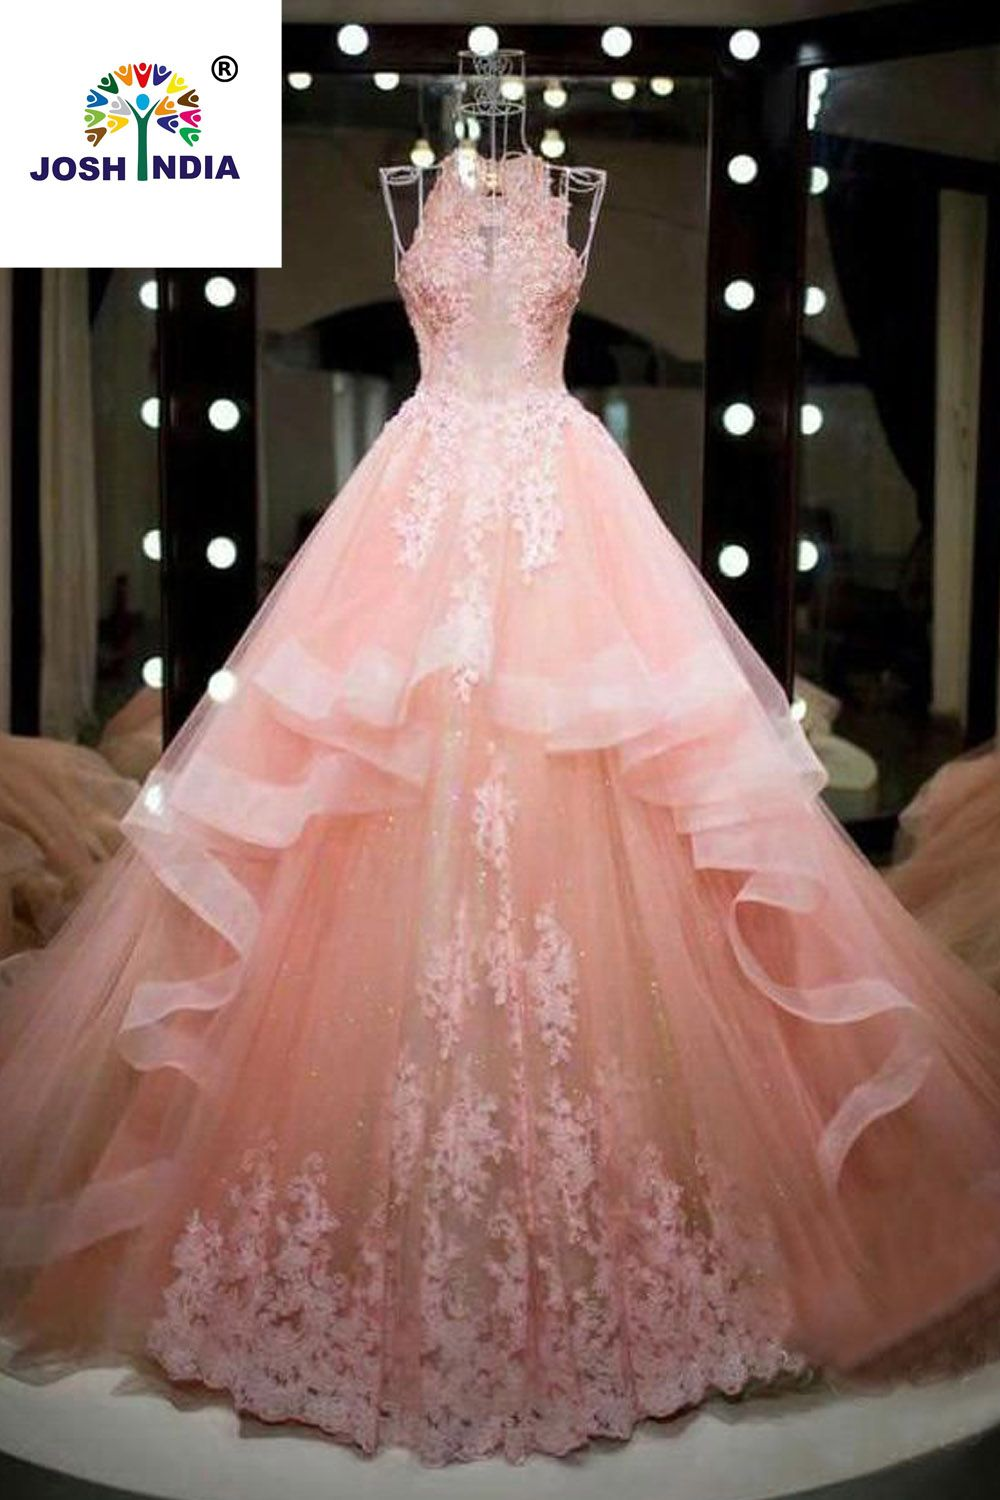 Nw Elegant Glamours Light Pink Color Printed Stylish Gown For Wedding Quince Dresses Quincenera Dresses Pretty Quinceanera Dresses [ 1500 x 1000 Pixel ]